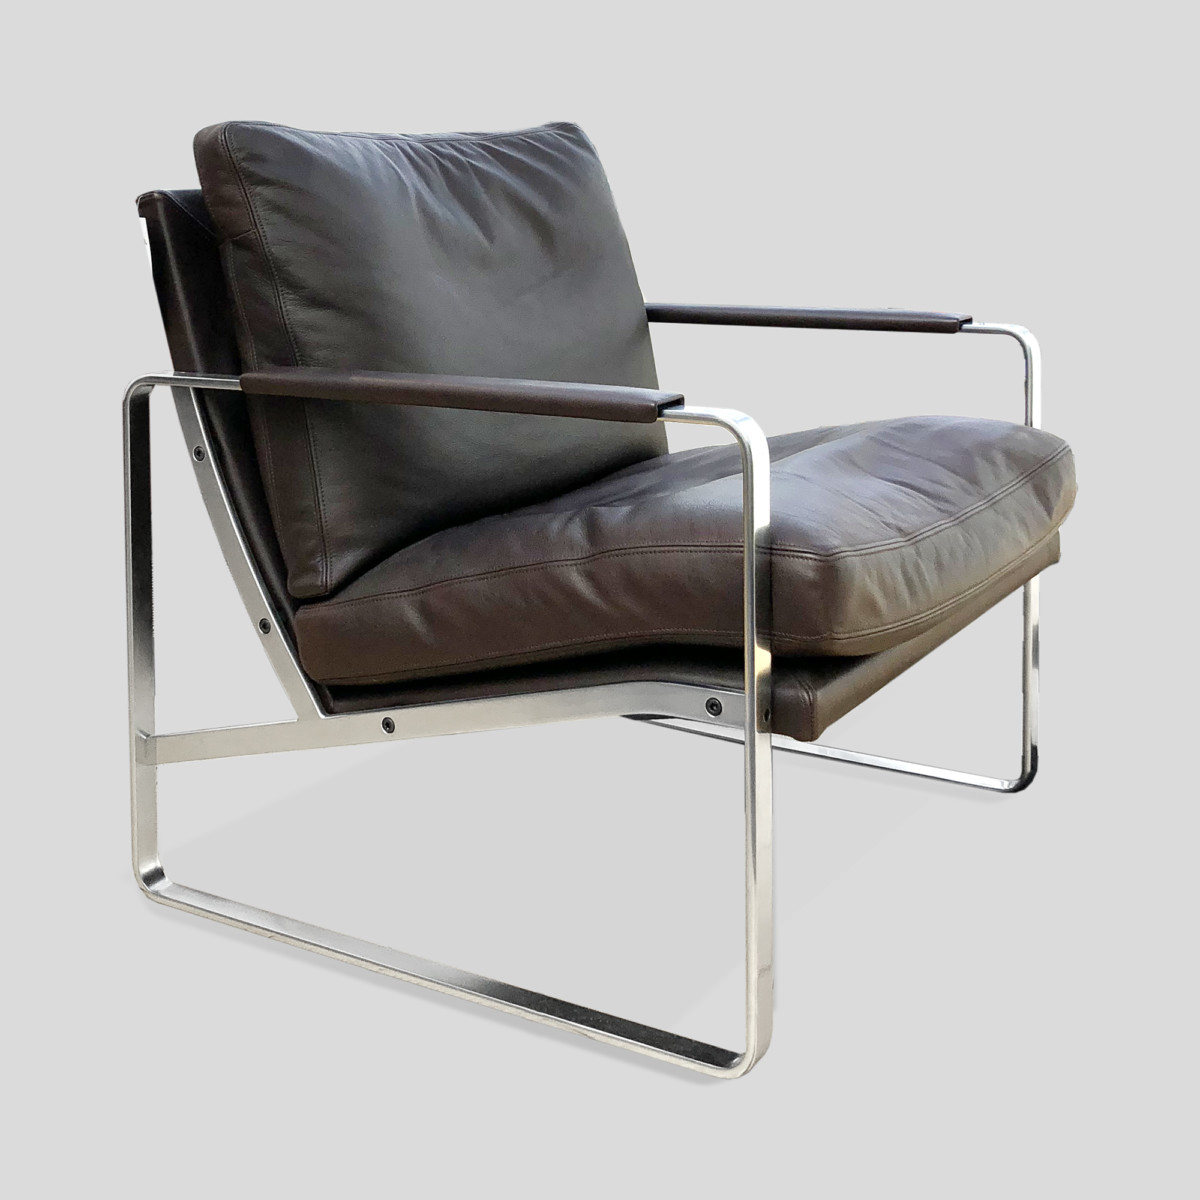 Knoll Sessel Walter Knoll Fabricius 710 10